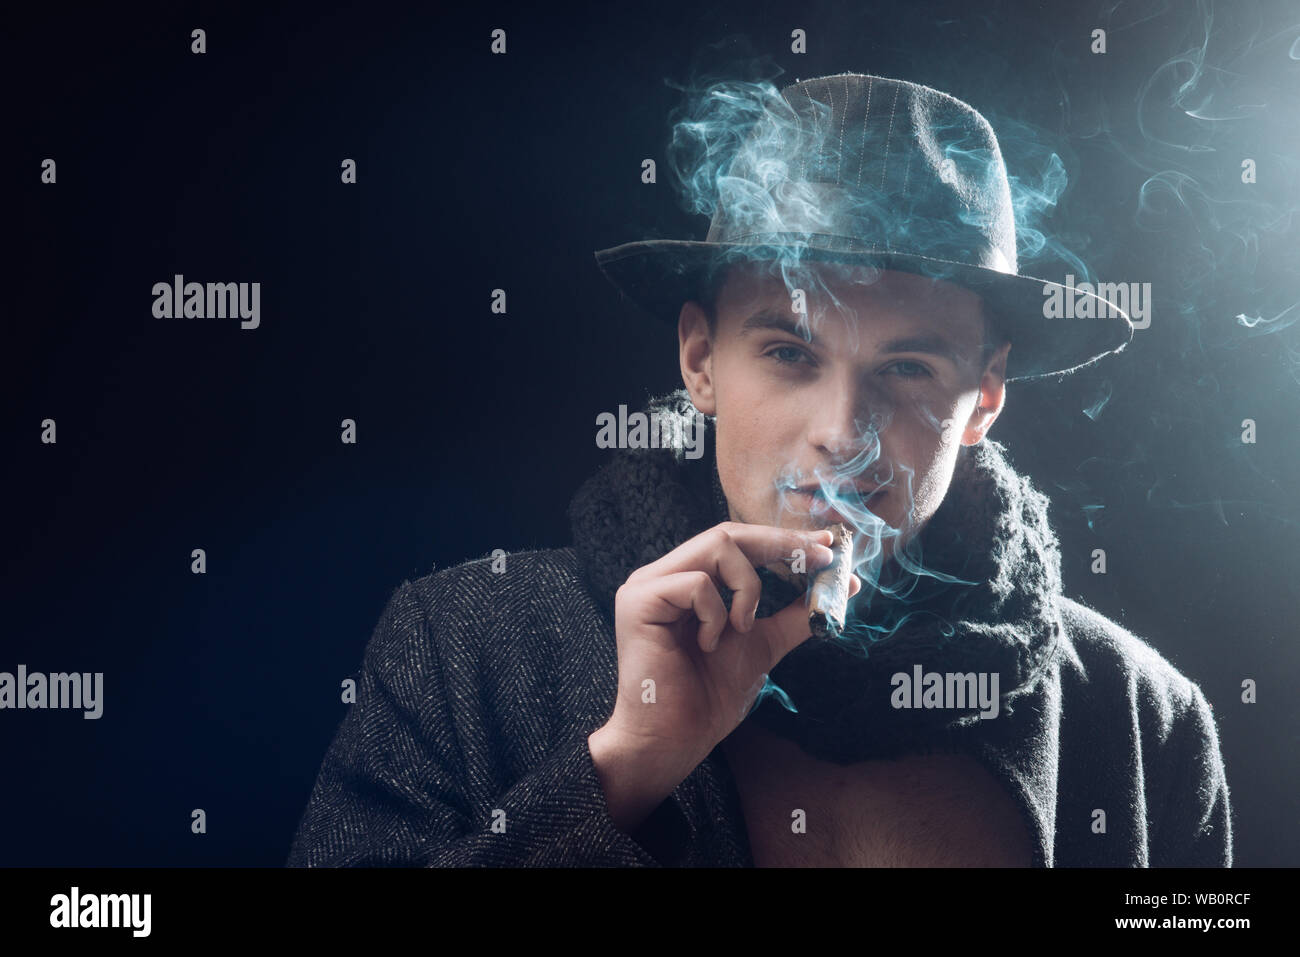 Man in coat, hat smoking cigar, dark background. Macho on mysterious face, detective, investigator, agent. Guy in old fashioned outfit looks mysteriou Stock Photo